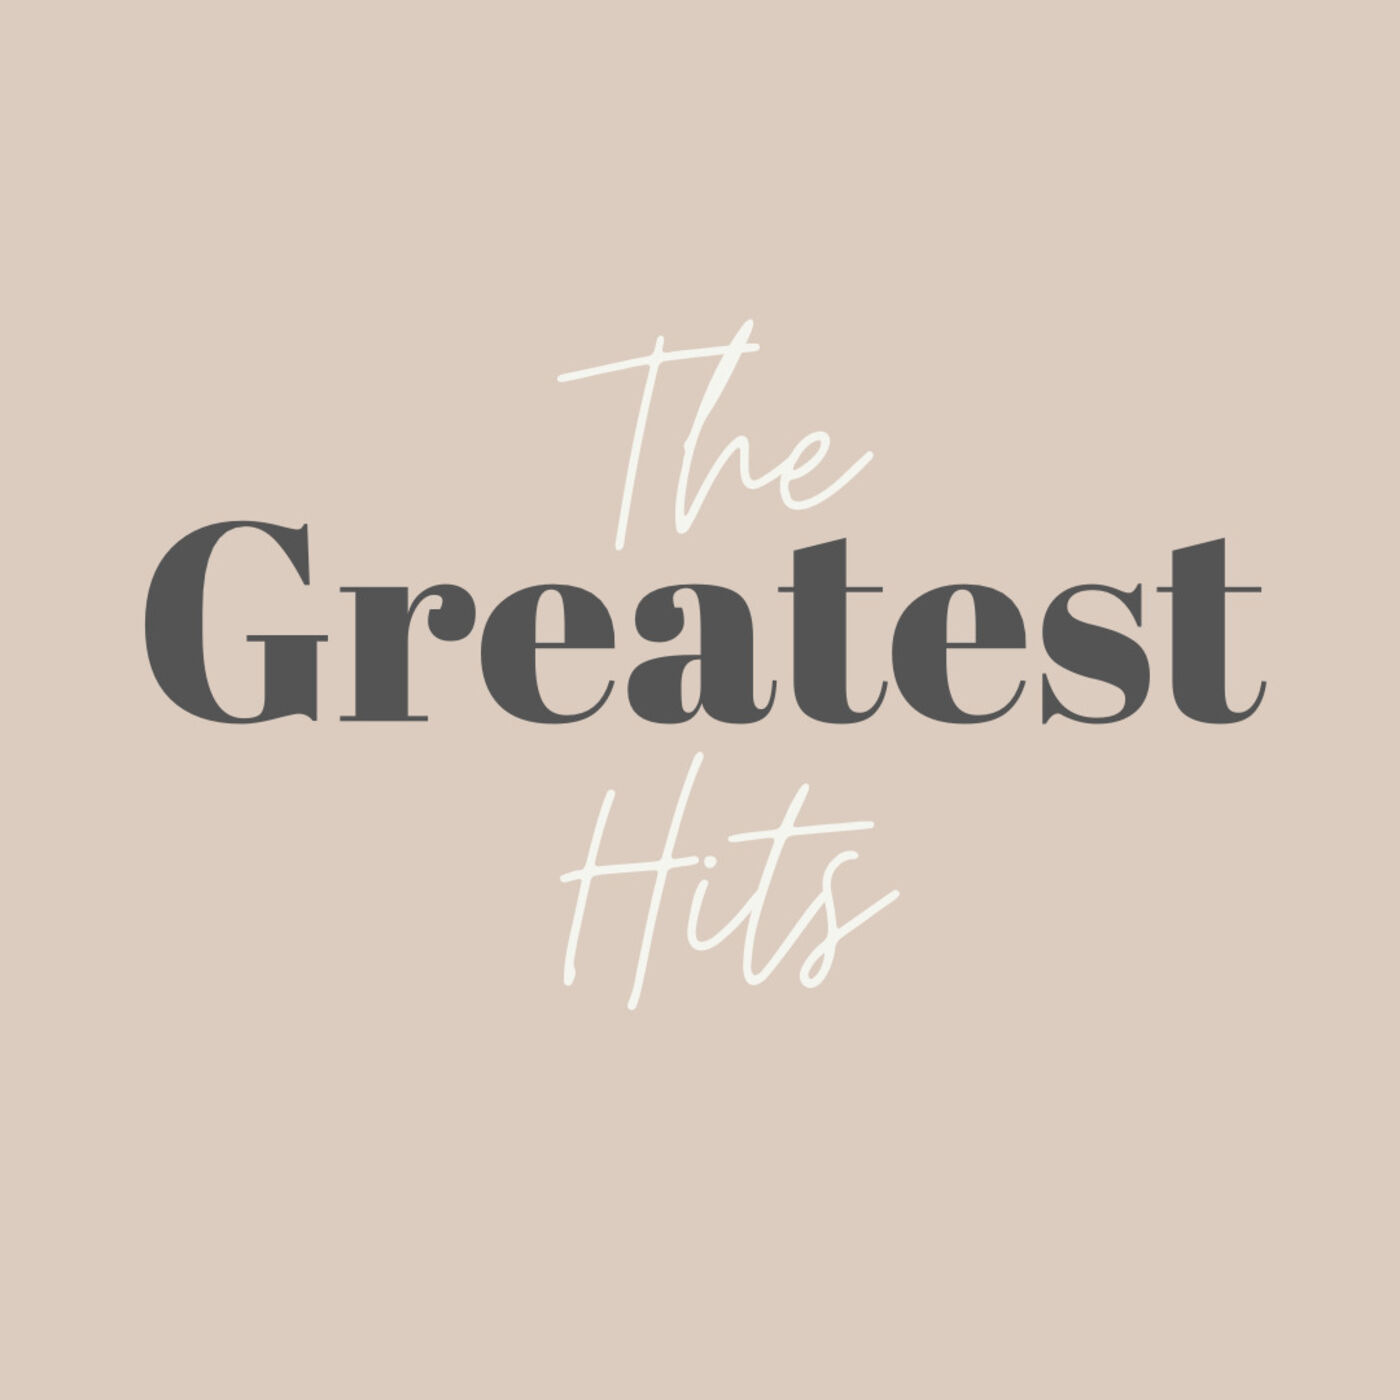 The Greatest Hits-Week 1